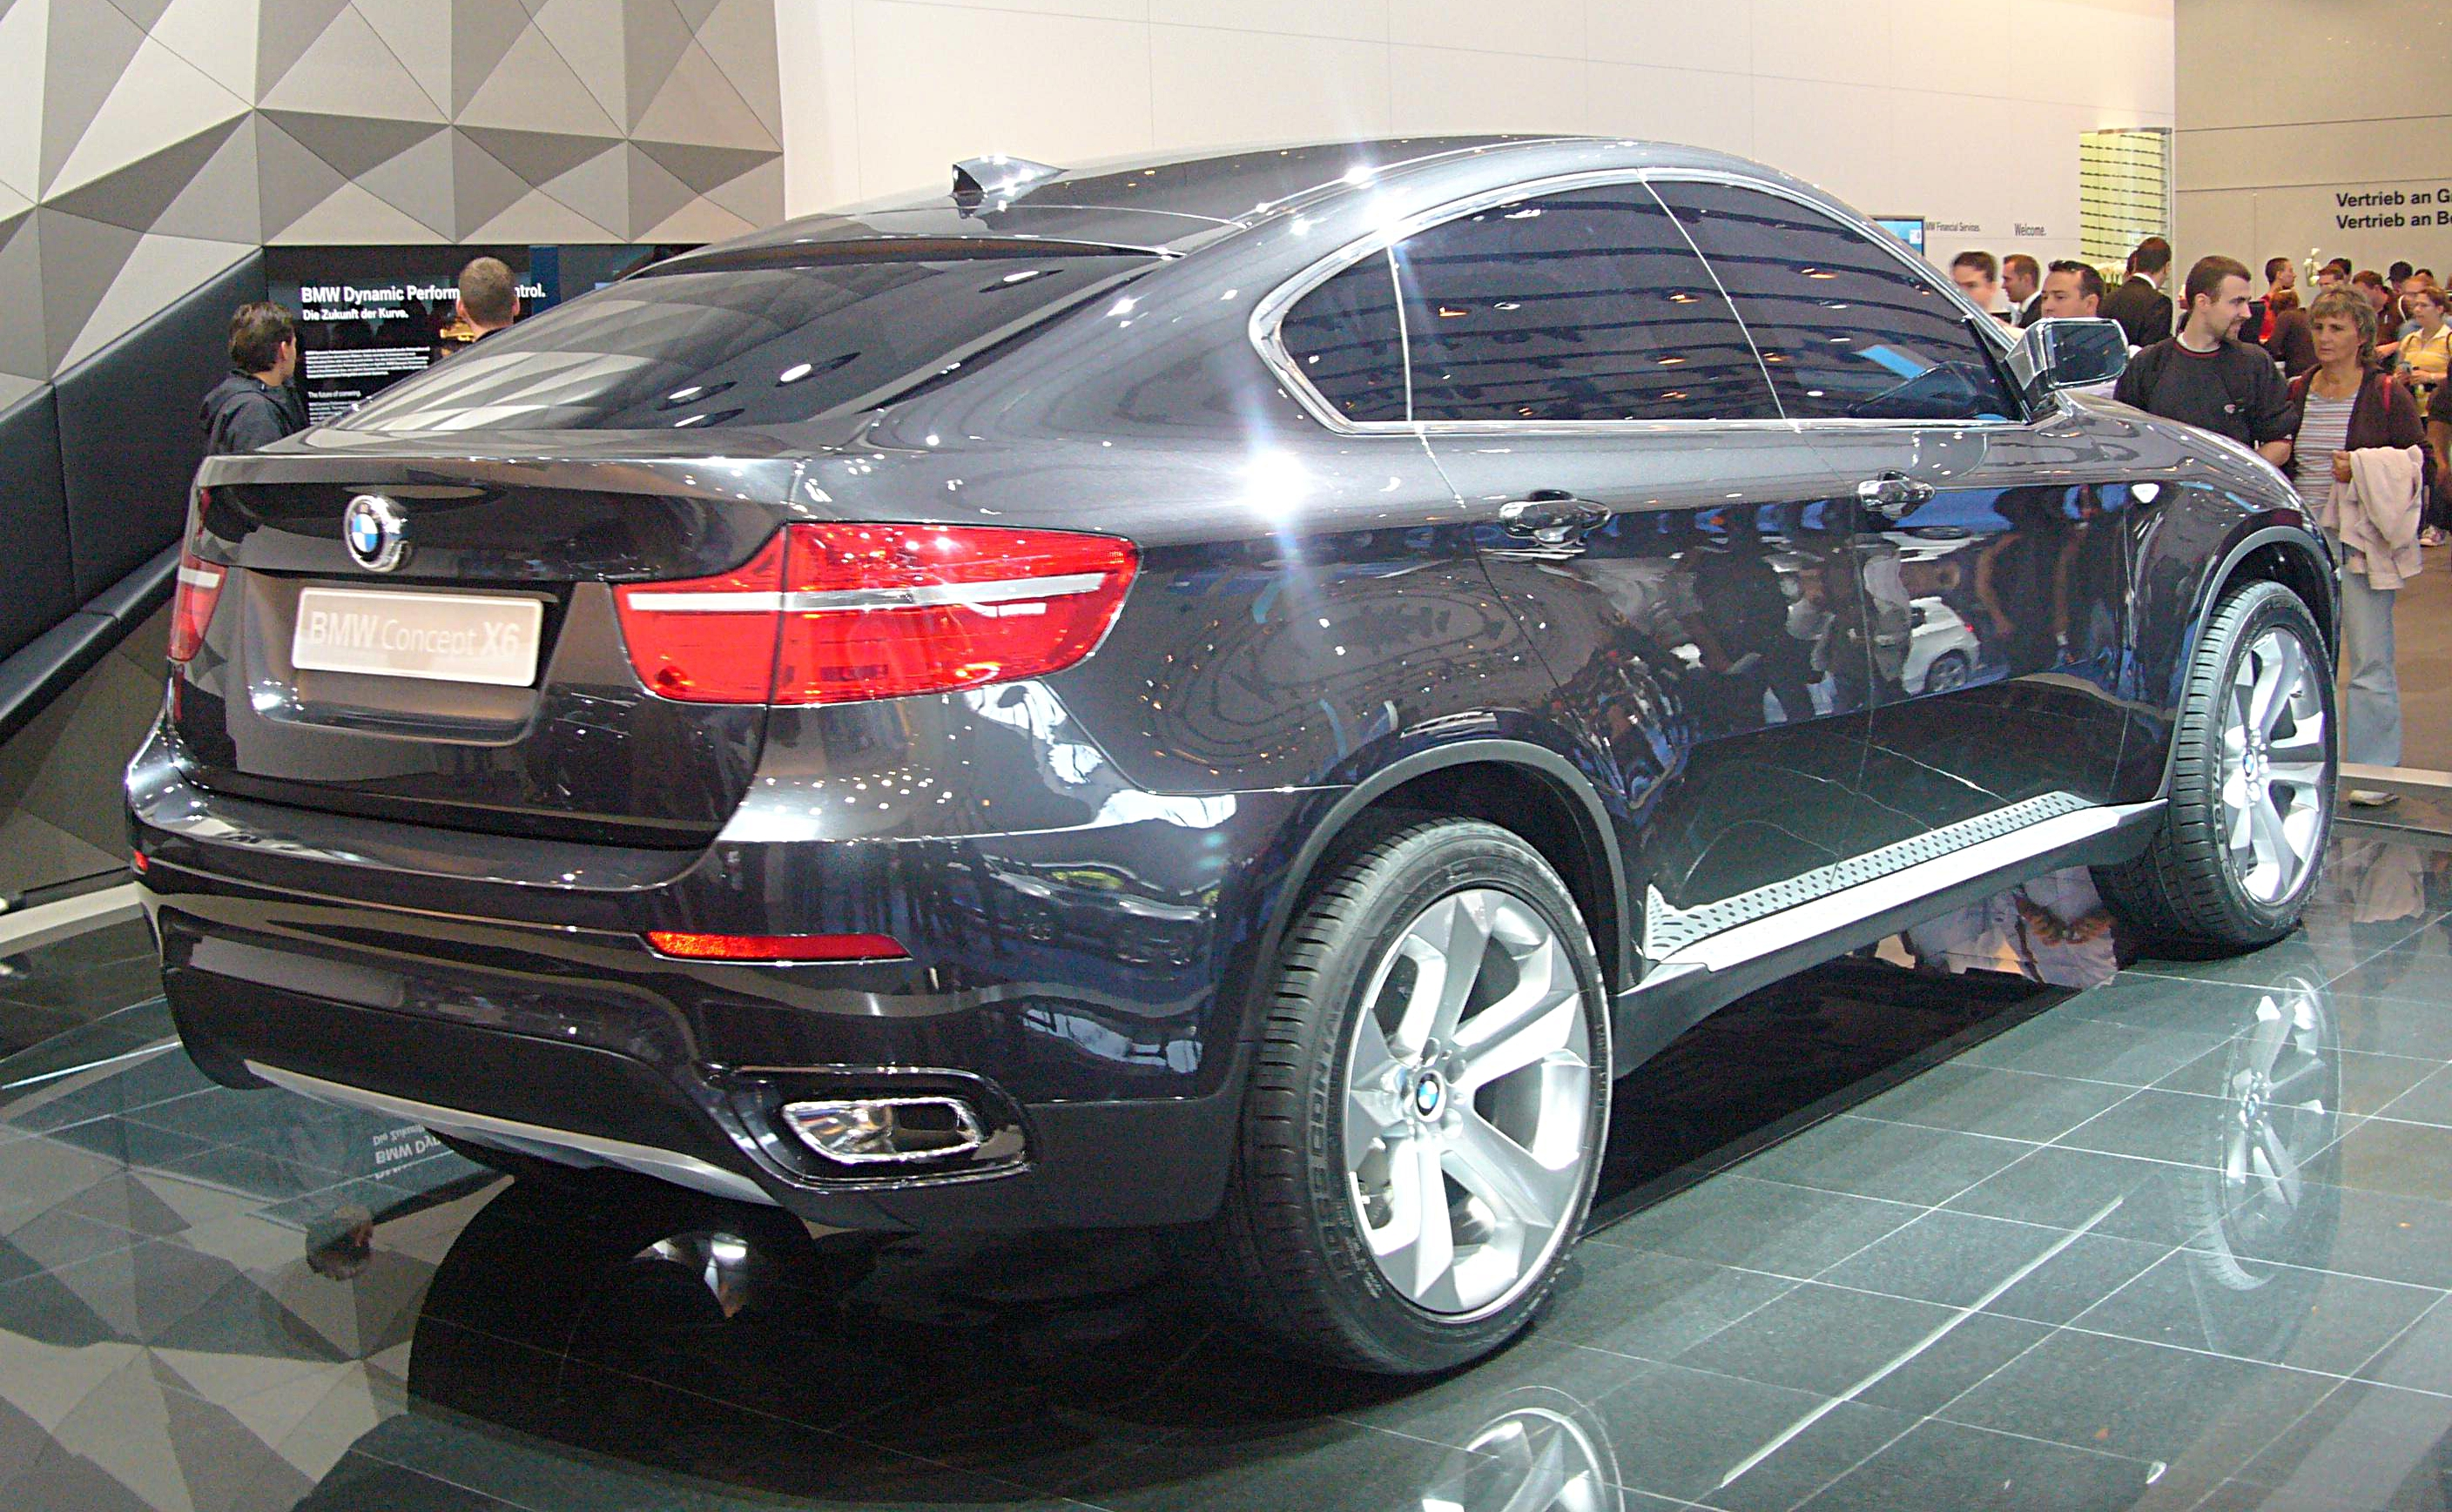 File:BMW Concept X6 (rear quarter).jpg - Wikimedia Commons